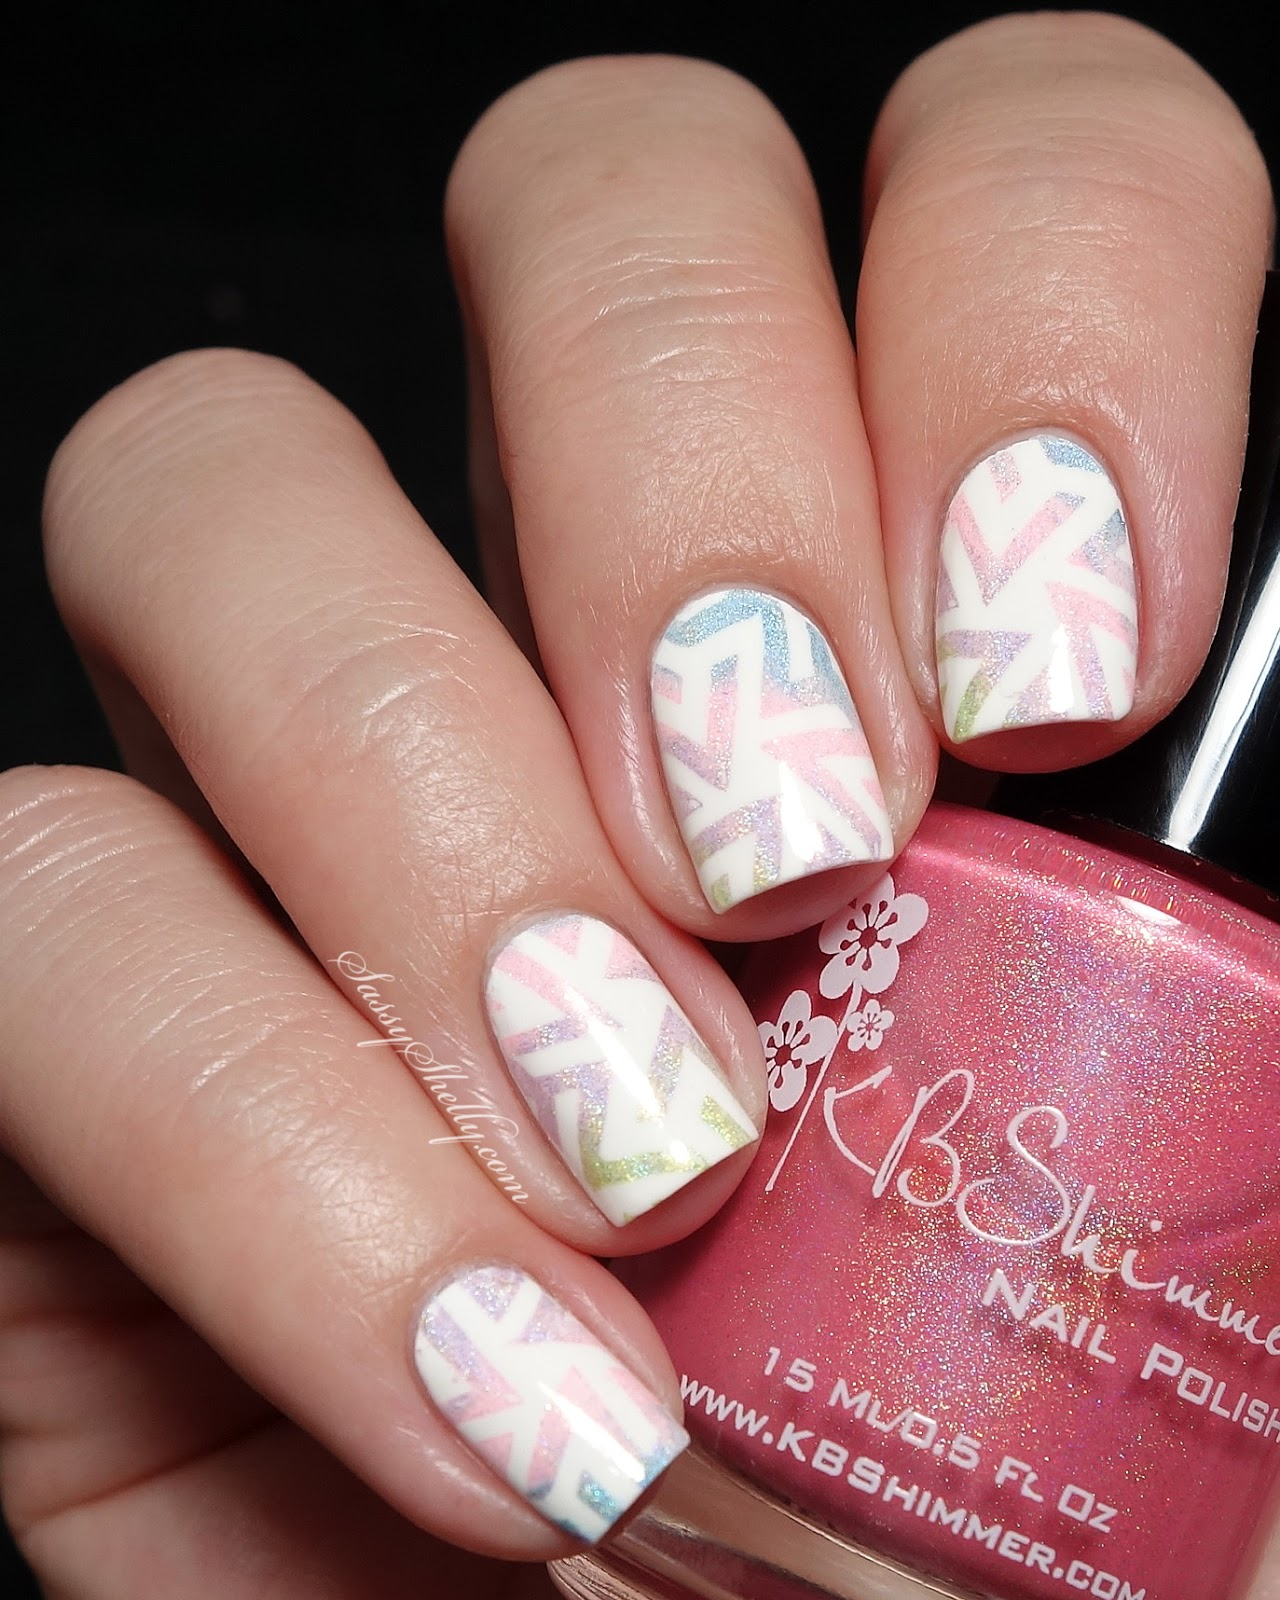 Spring Nail Art geometric gradient stamping with KBShimmer and Pueen by Sassy Shelly - guest post for Kellie Gonzo